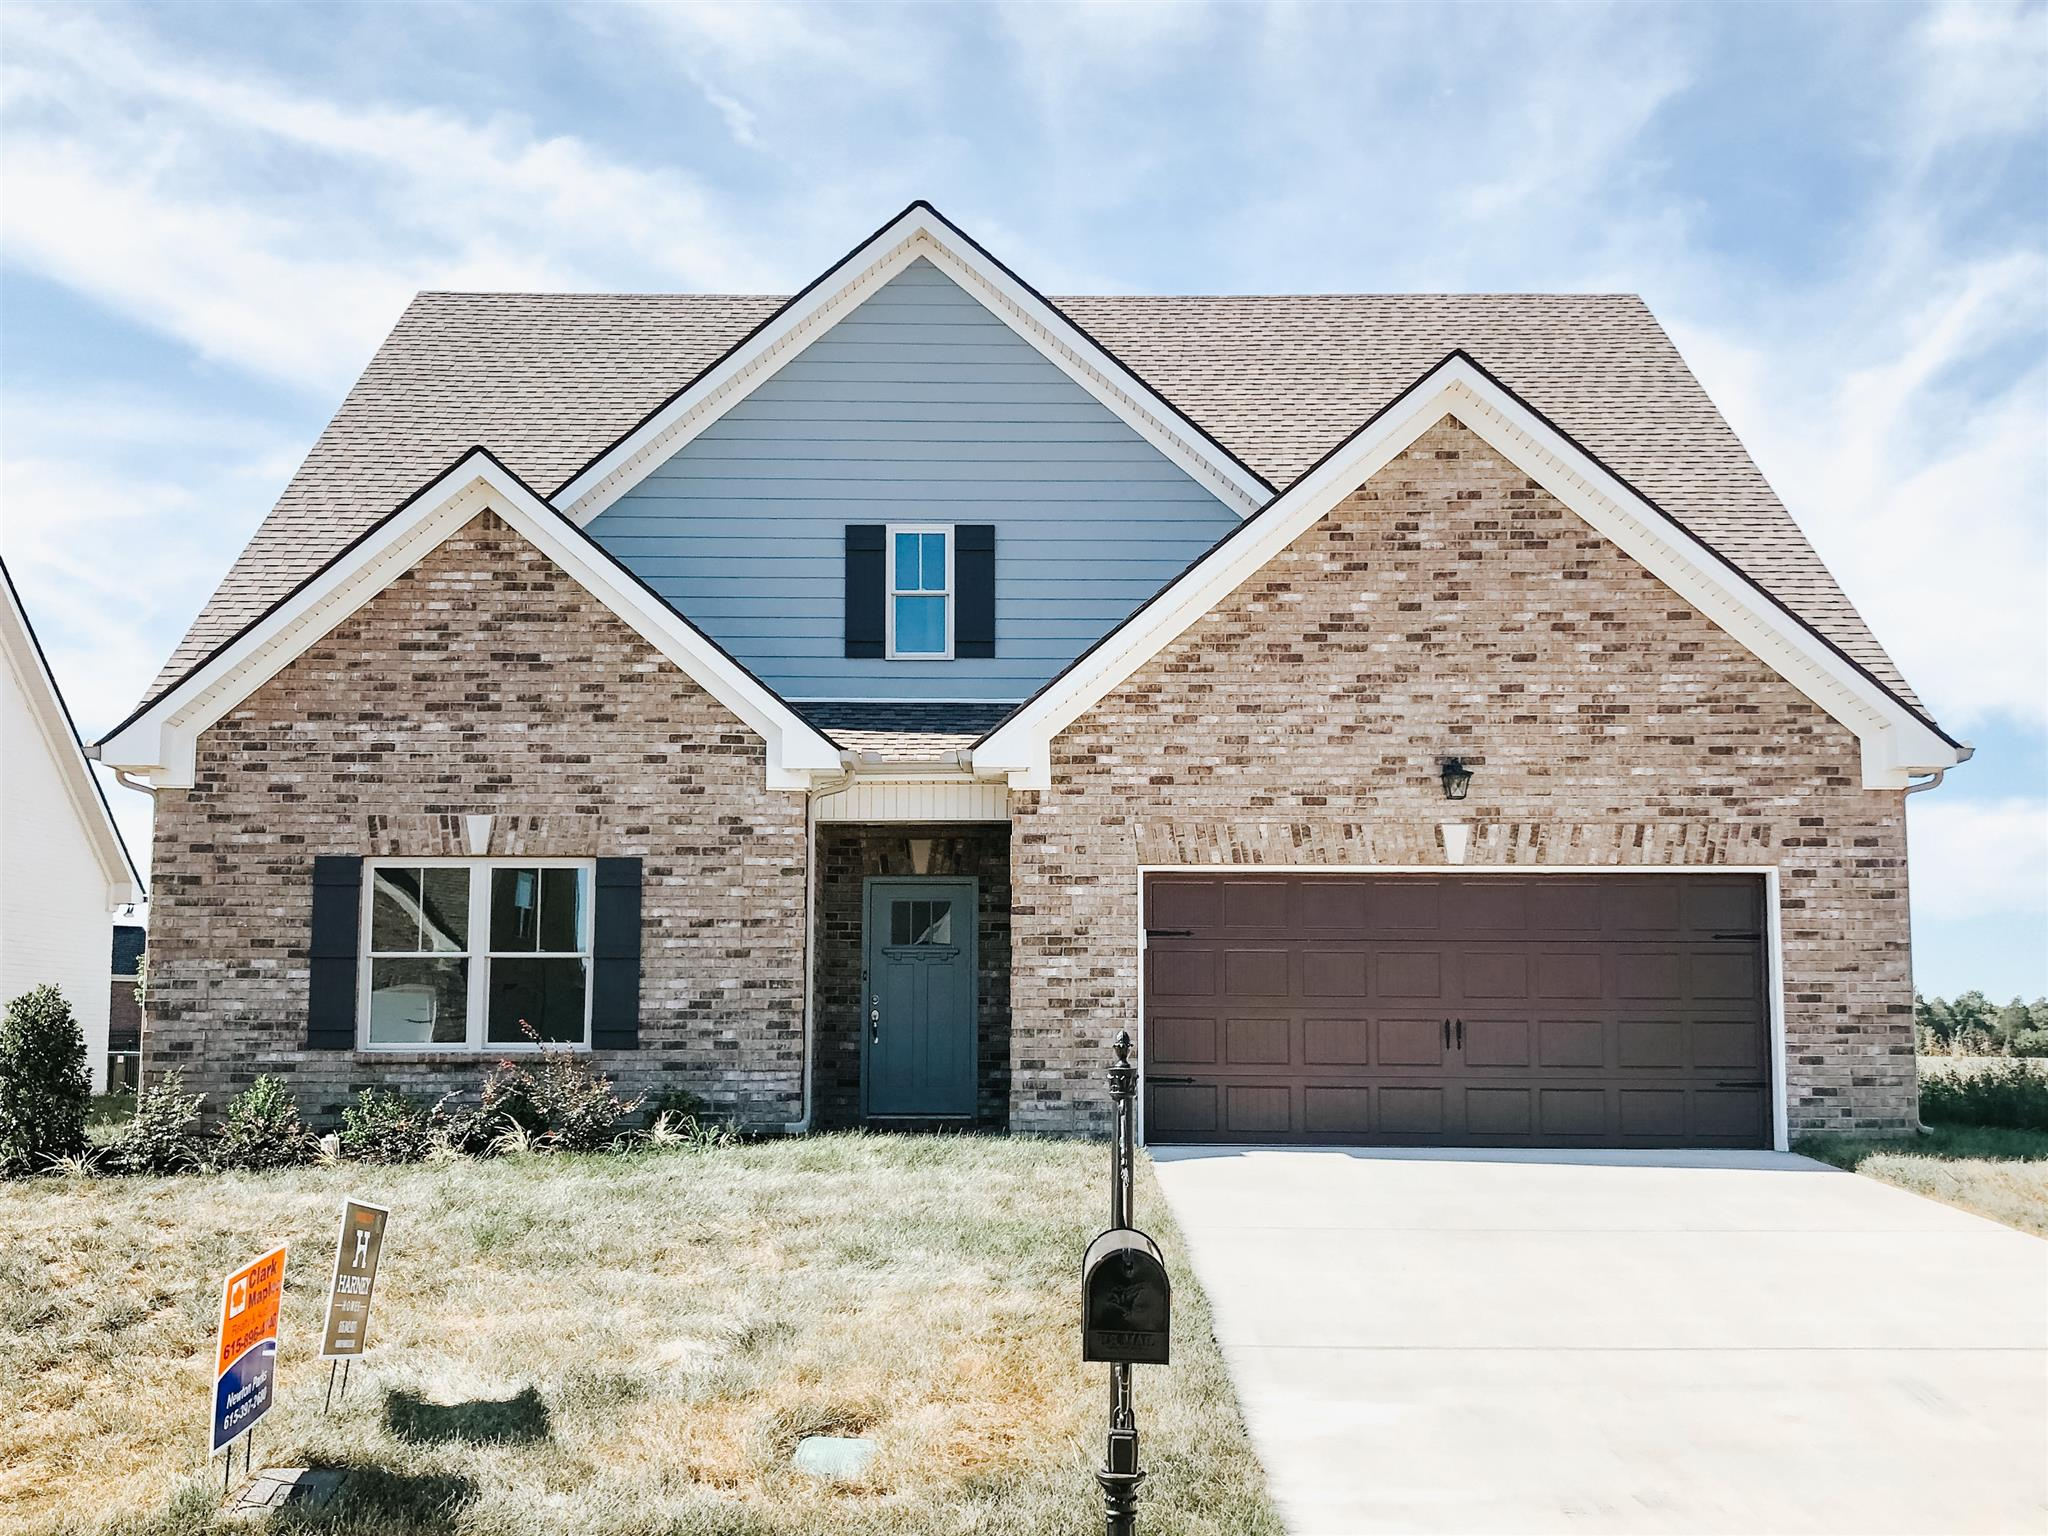 3915 Runyan Cove (Lot 18) 37127 - One of Murfreesboro Homes for Sale